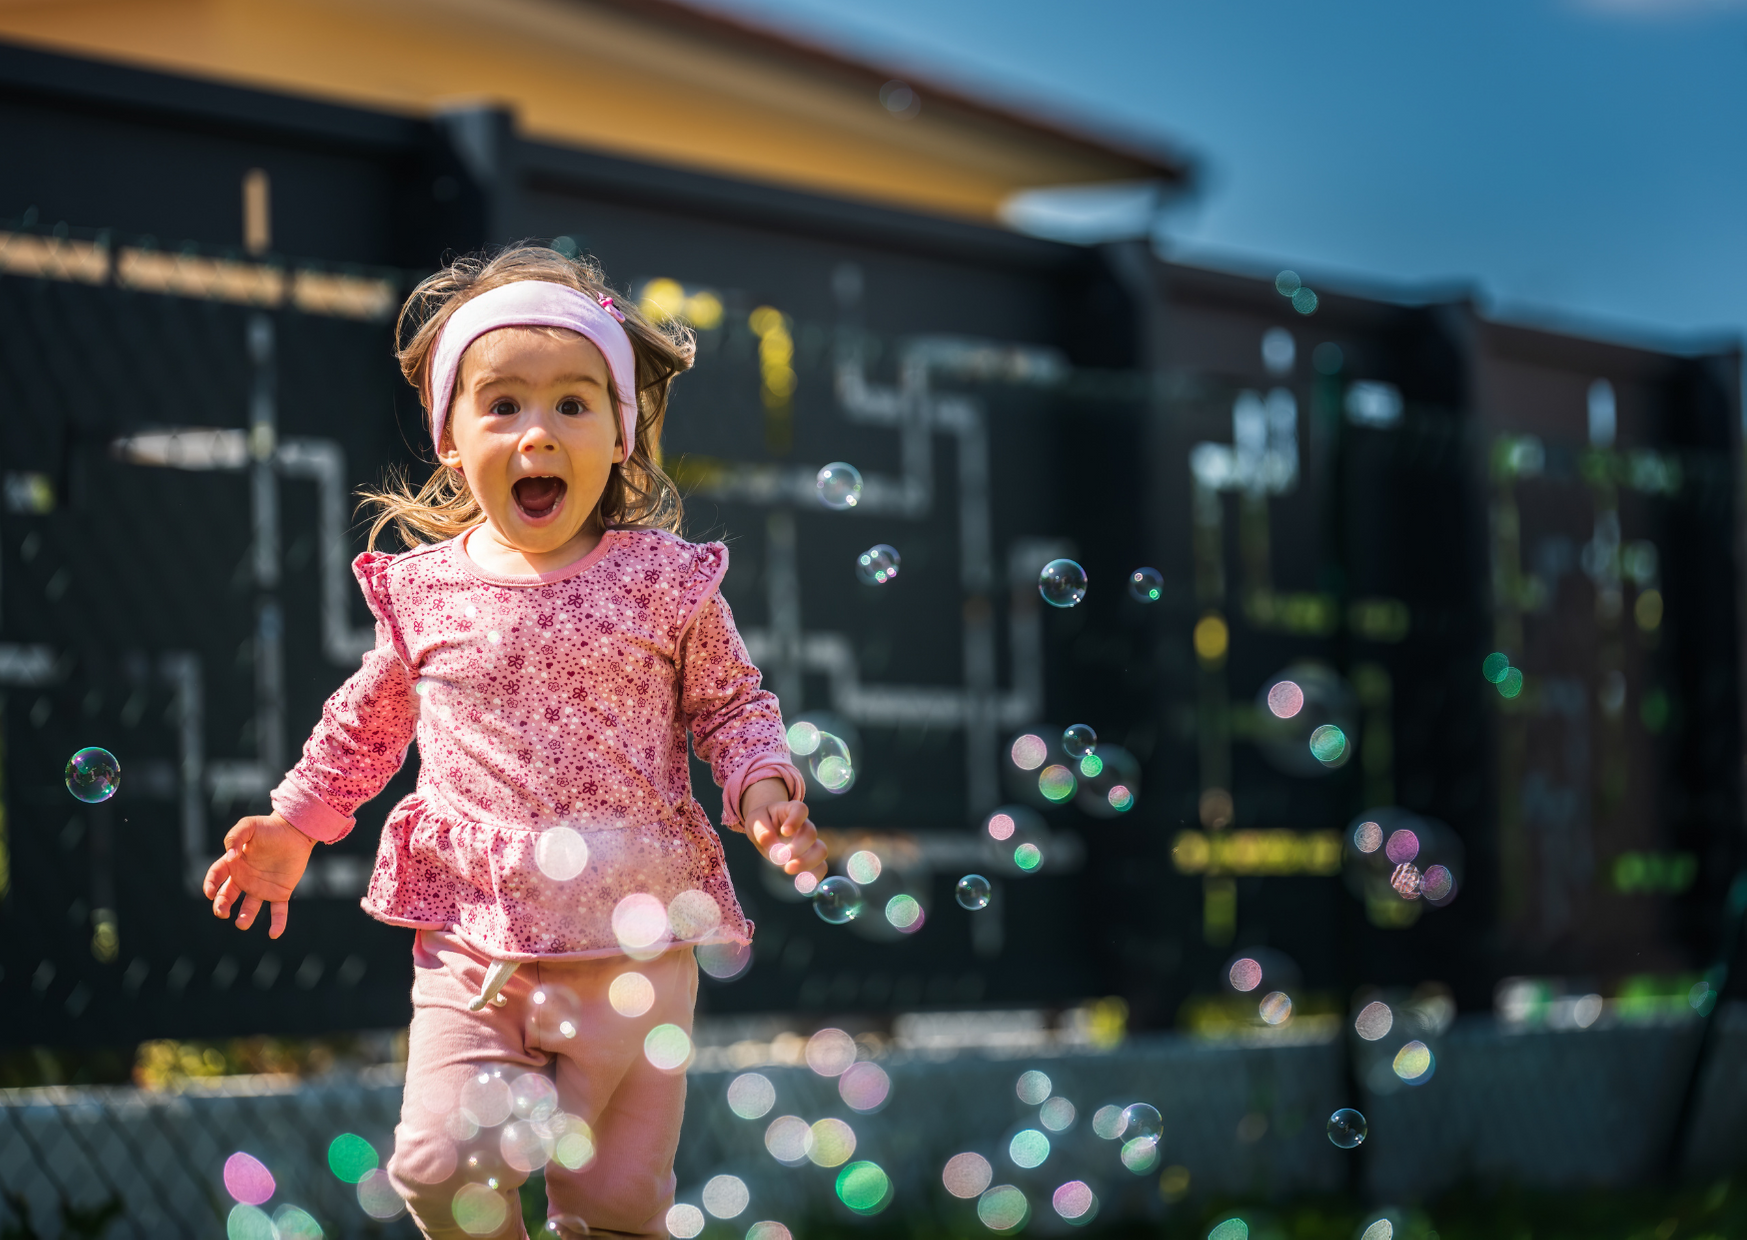 2 years old playing bubbles in backyard